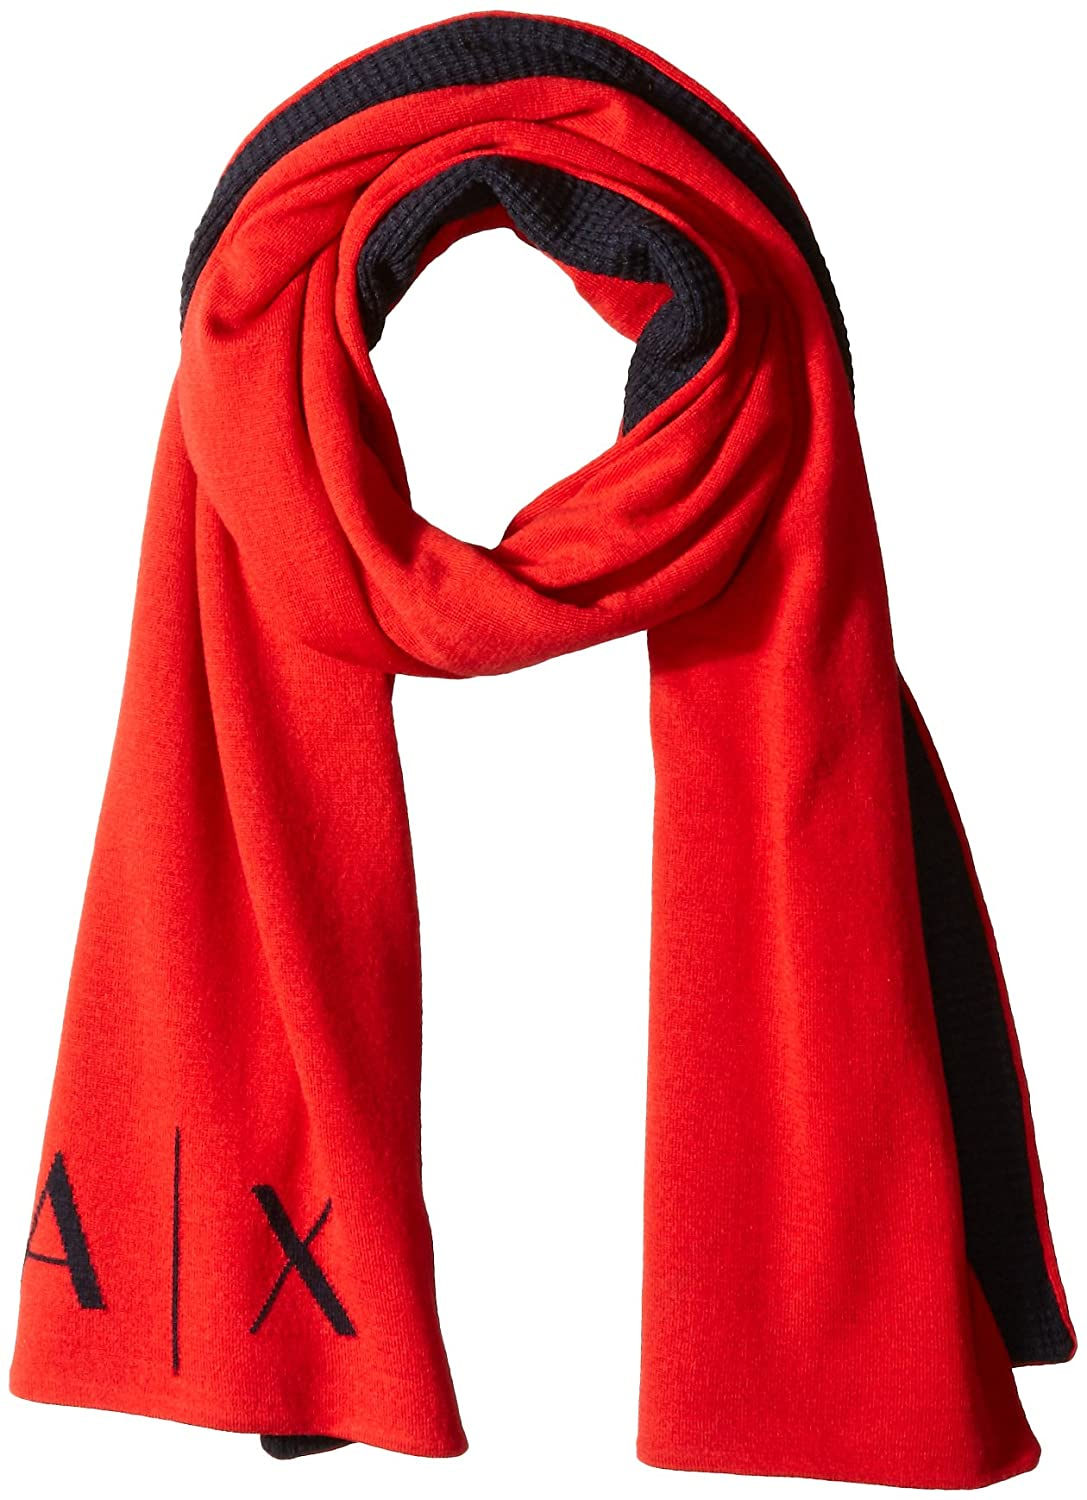 Armani Exchange Men's Knitted Logo Scarf Absolute Red/Navy One Size 954002-6A007